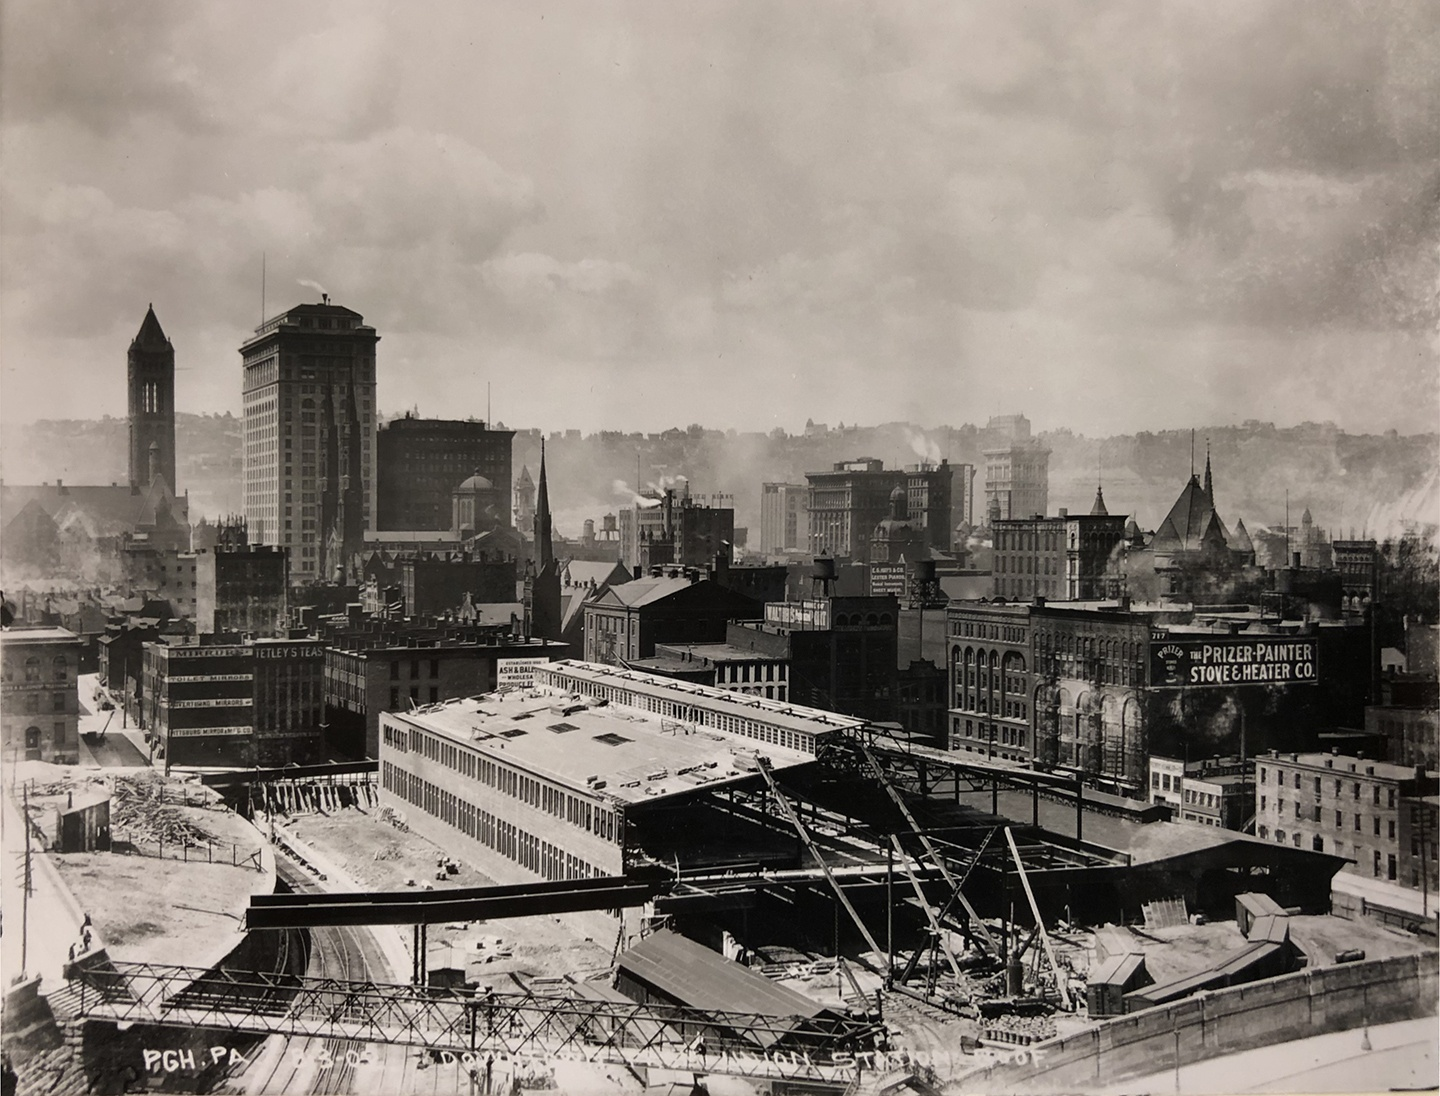 In 1902, as the new PRR passenger station neared completion (where it remains today), an even larger freight terminal was being built atop the former Grant Street. Carnegie Library of Pittsburgh, Pennsylvania Room, BR-131.